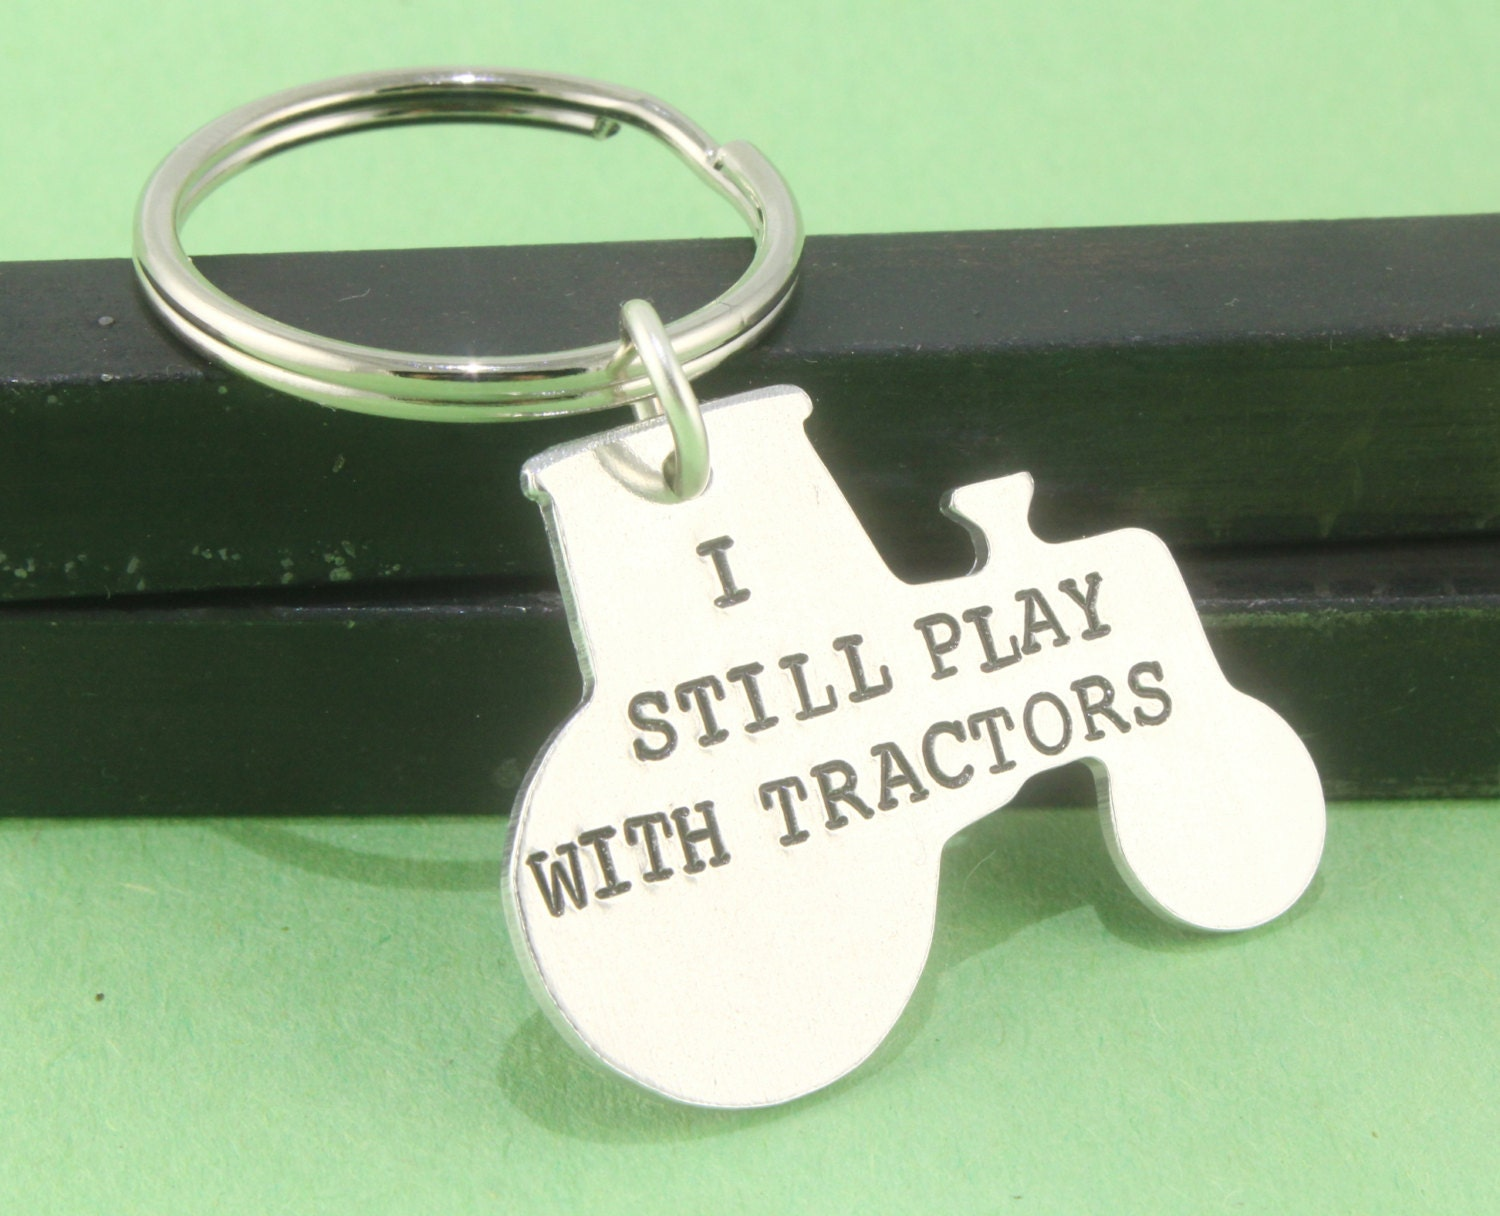 Keychains Lightupcircuitboardkeychain Tractor Keychain Keyring Key Chain Ring Gift For